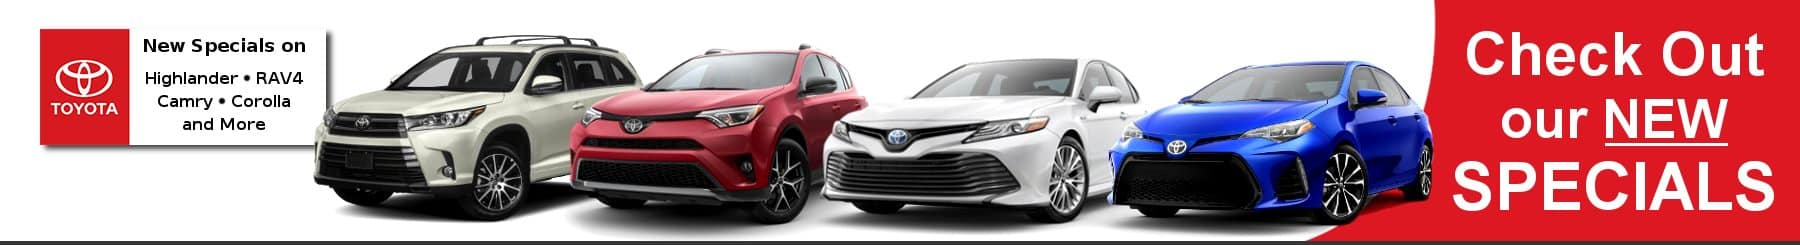 Specials on New Toyota Models